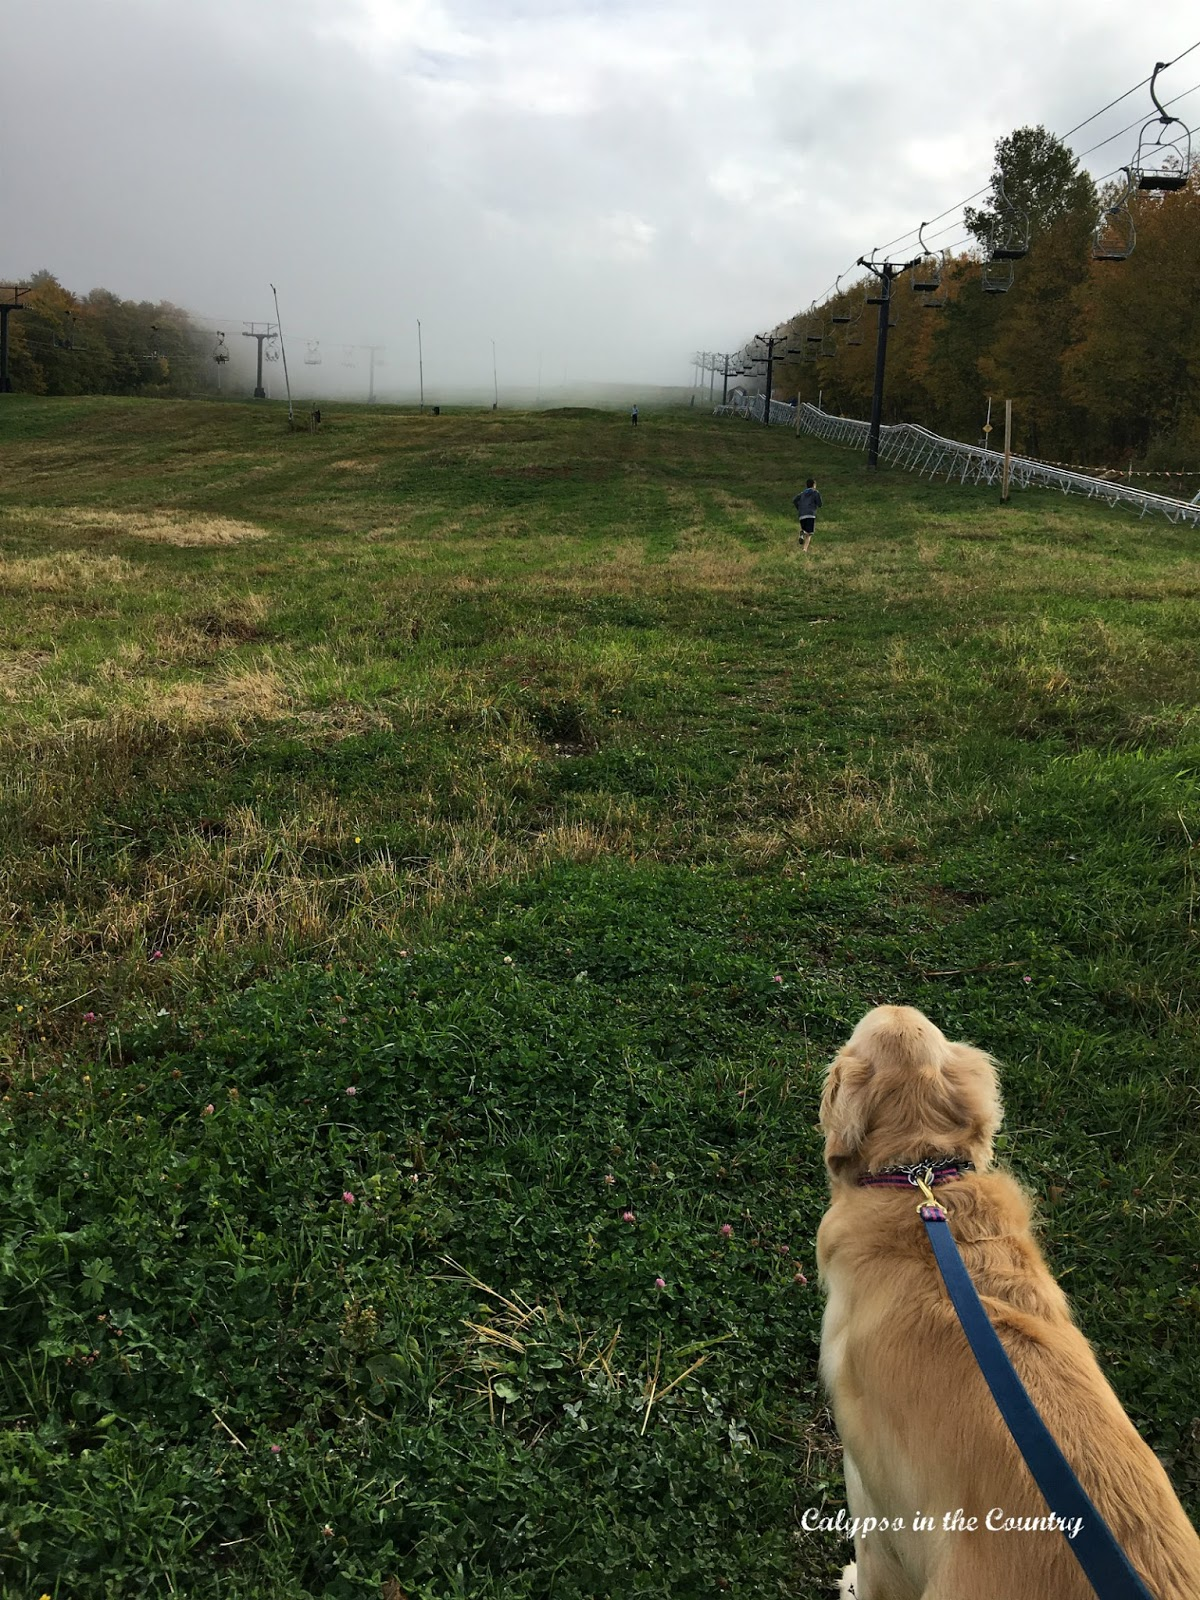 Killington Ski Slopes in the Fall with a golden retriever